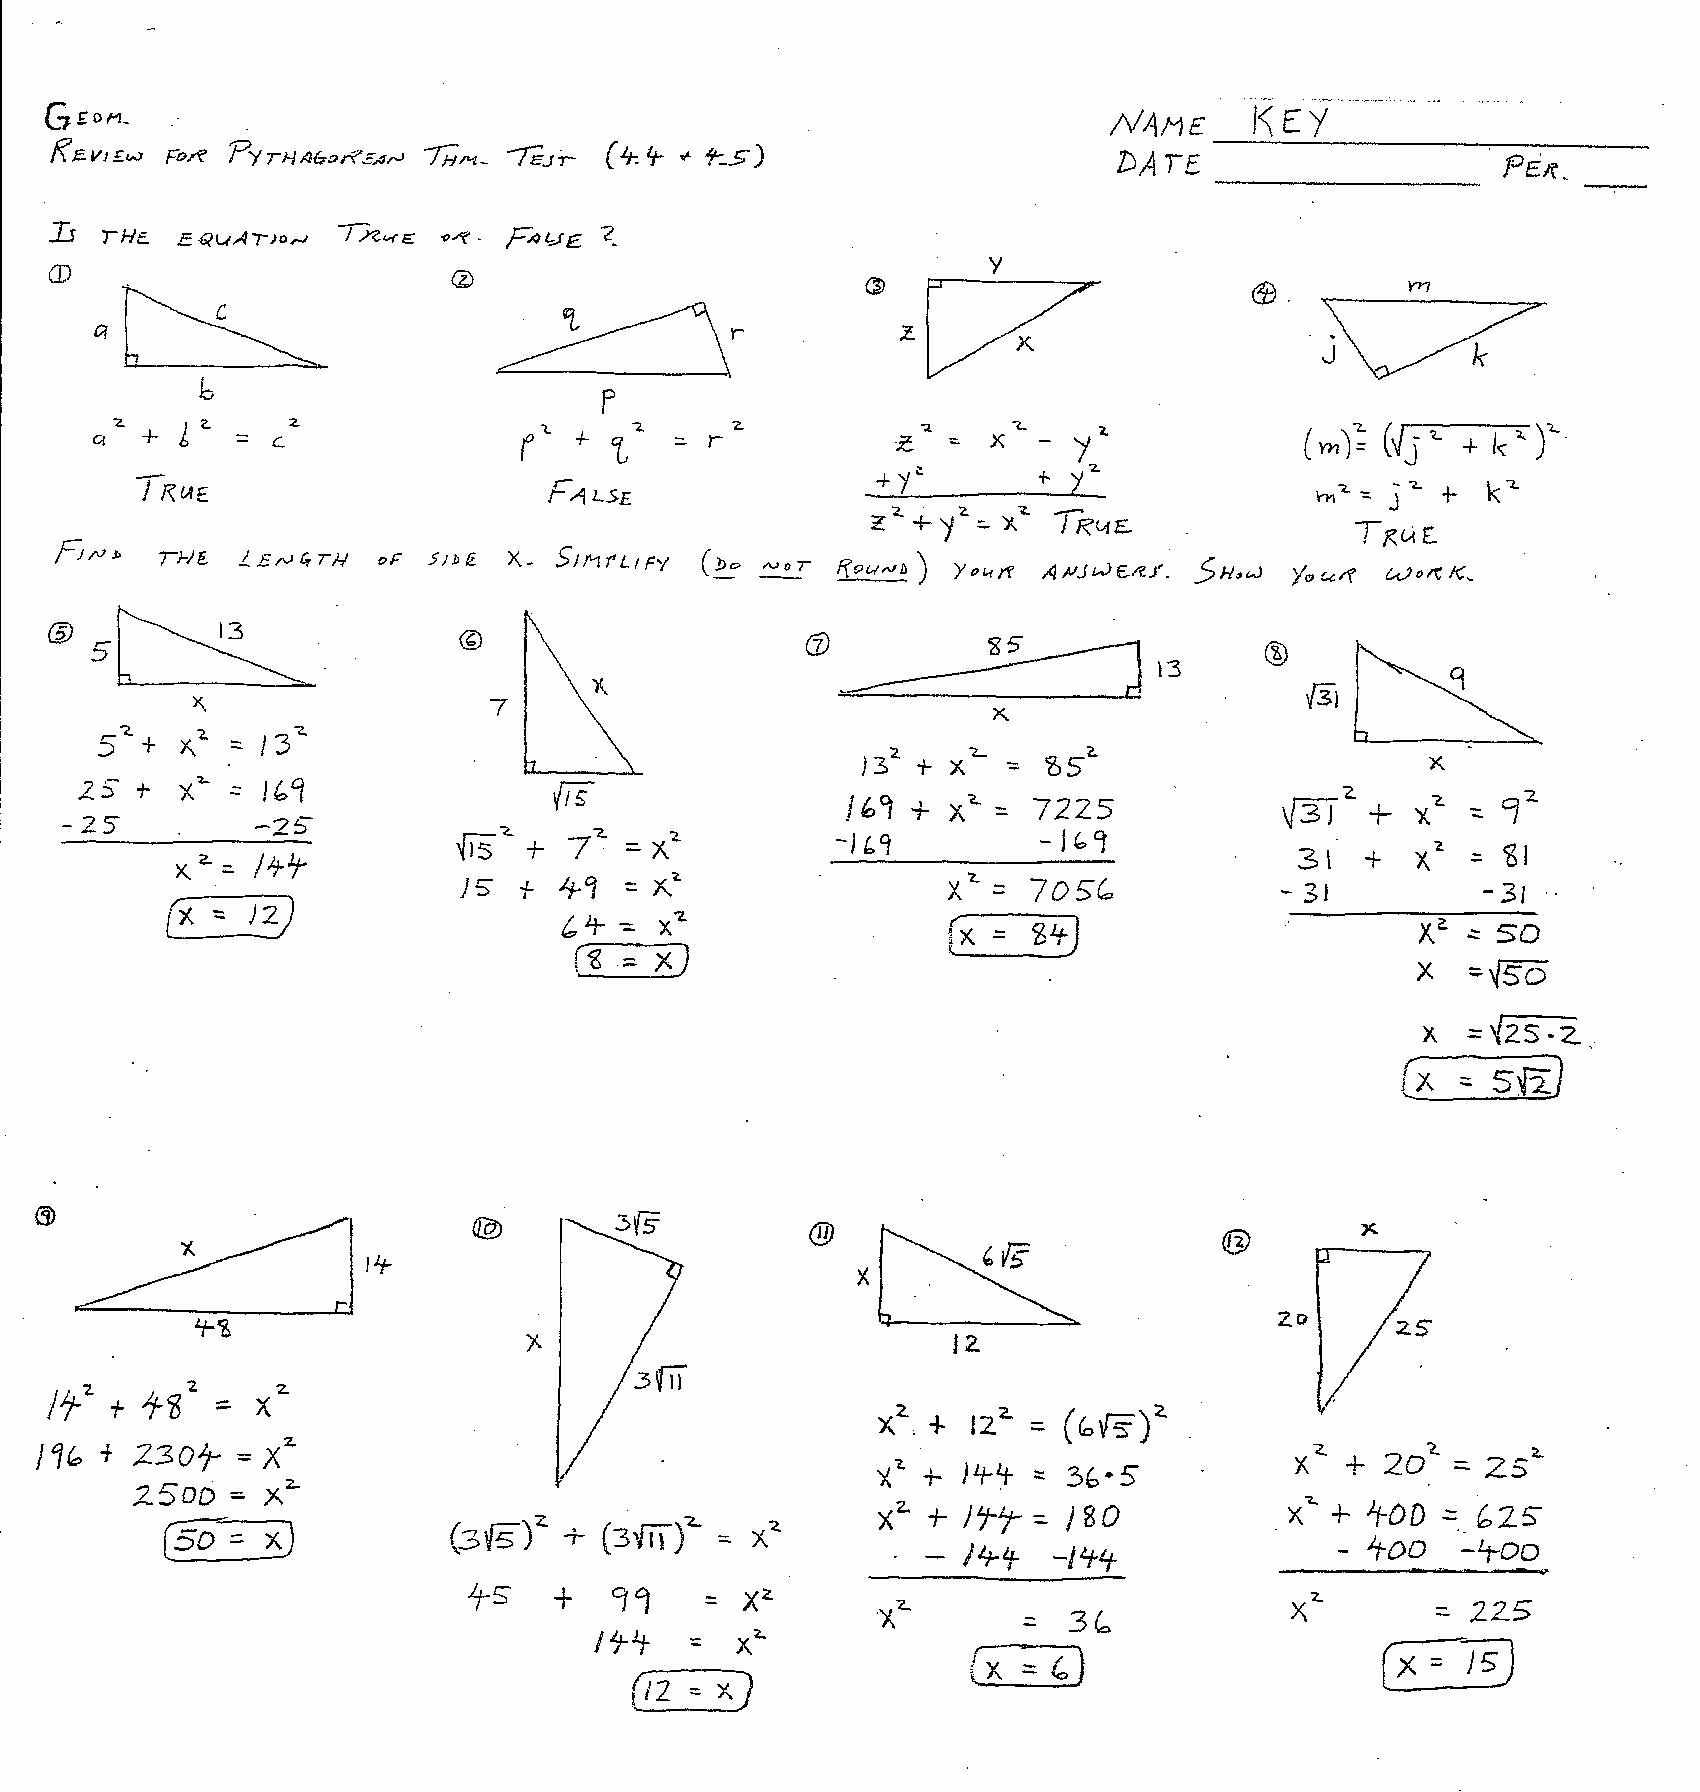 Congruent Triangles Worksheet Answer Key New 6 Best Of Congruent Triangles Worksheet with Answer